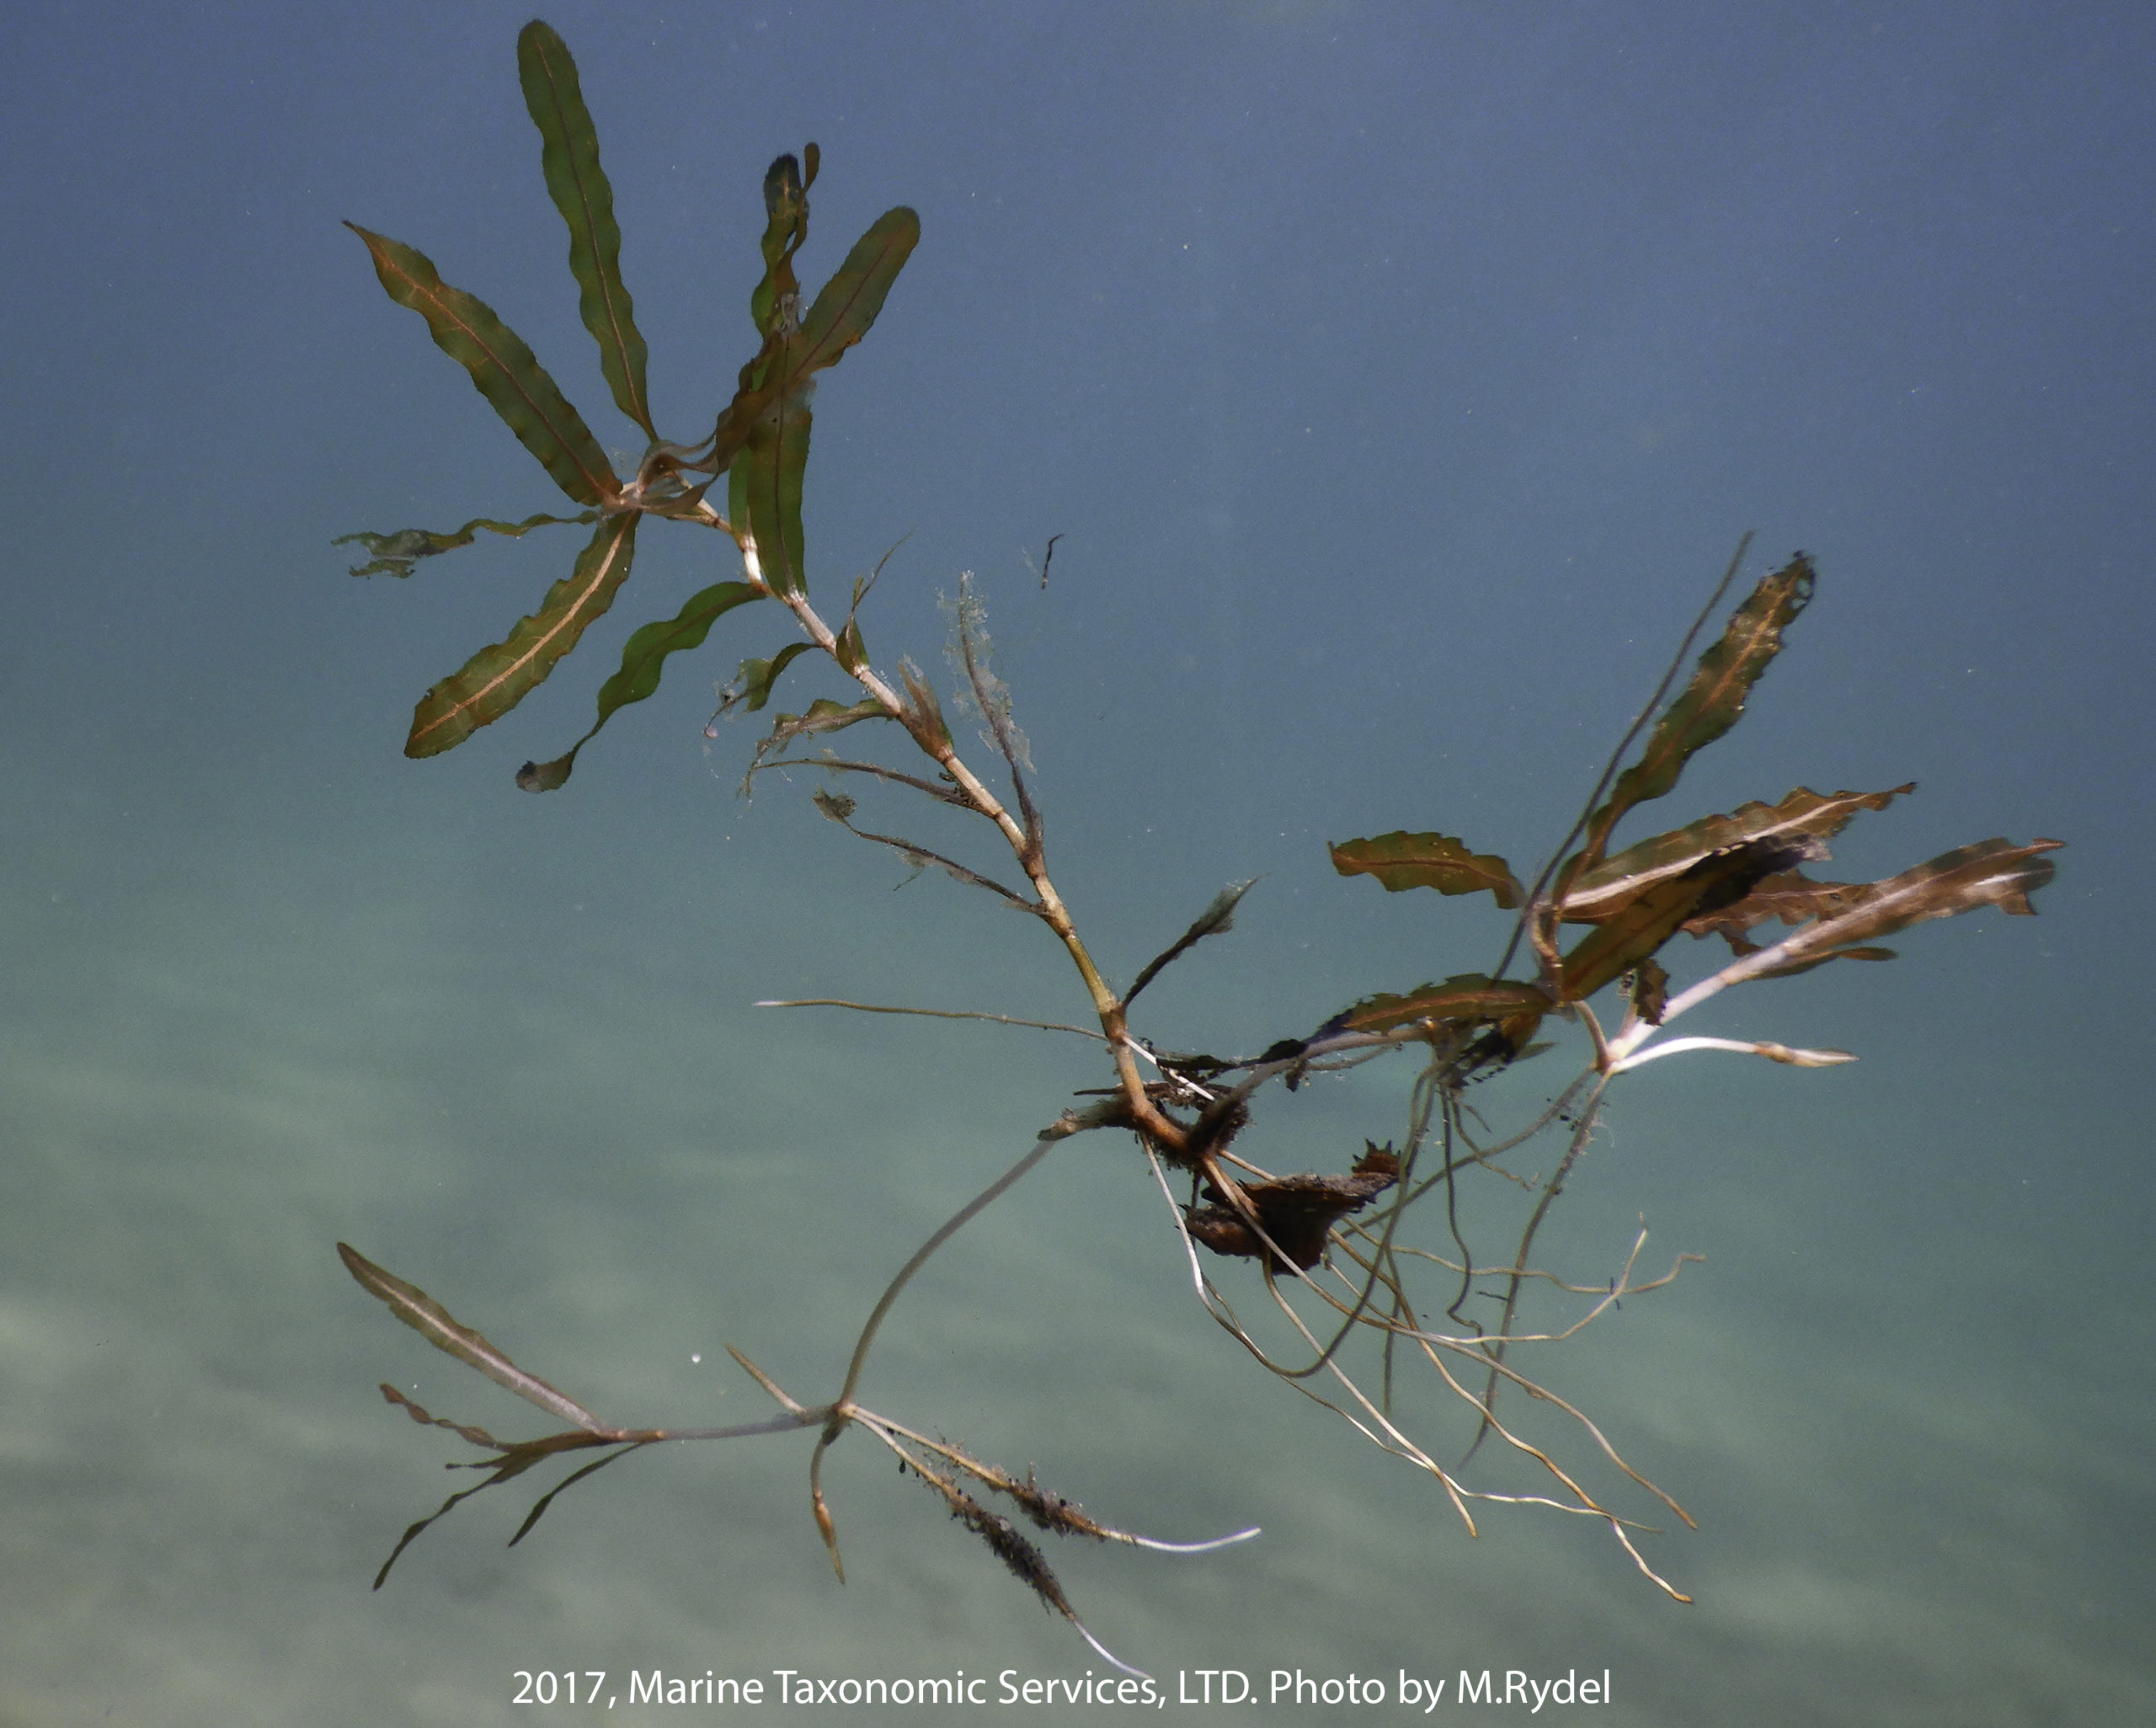 Image shows a green and red curly-leaf pondweed fragment suspended in blue water.